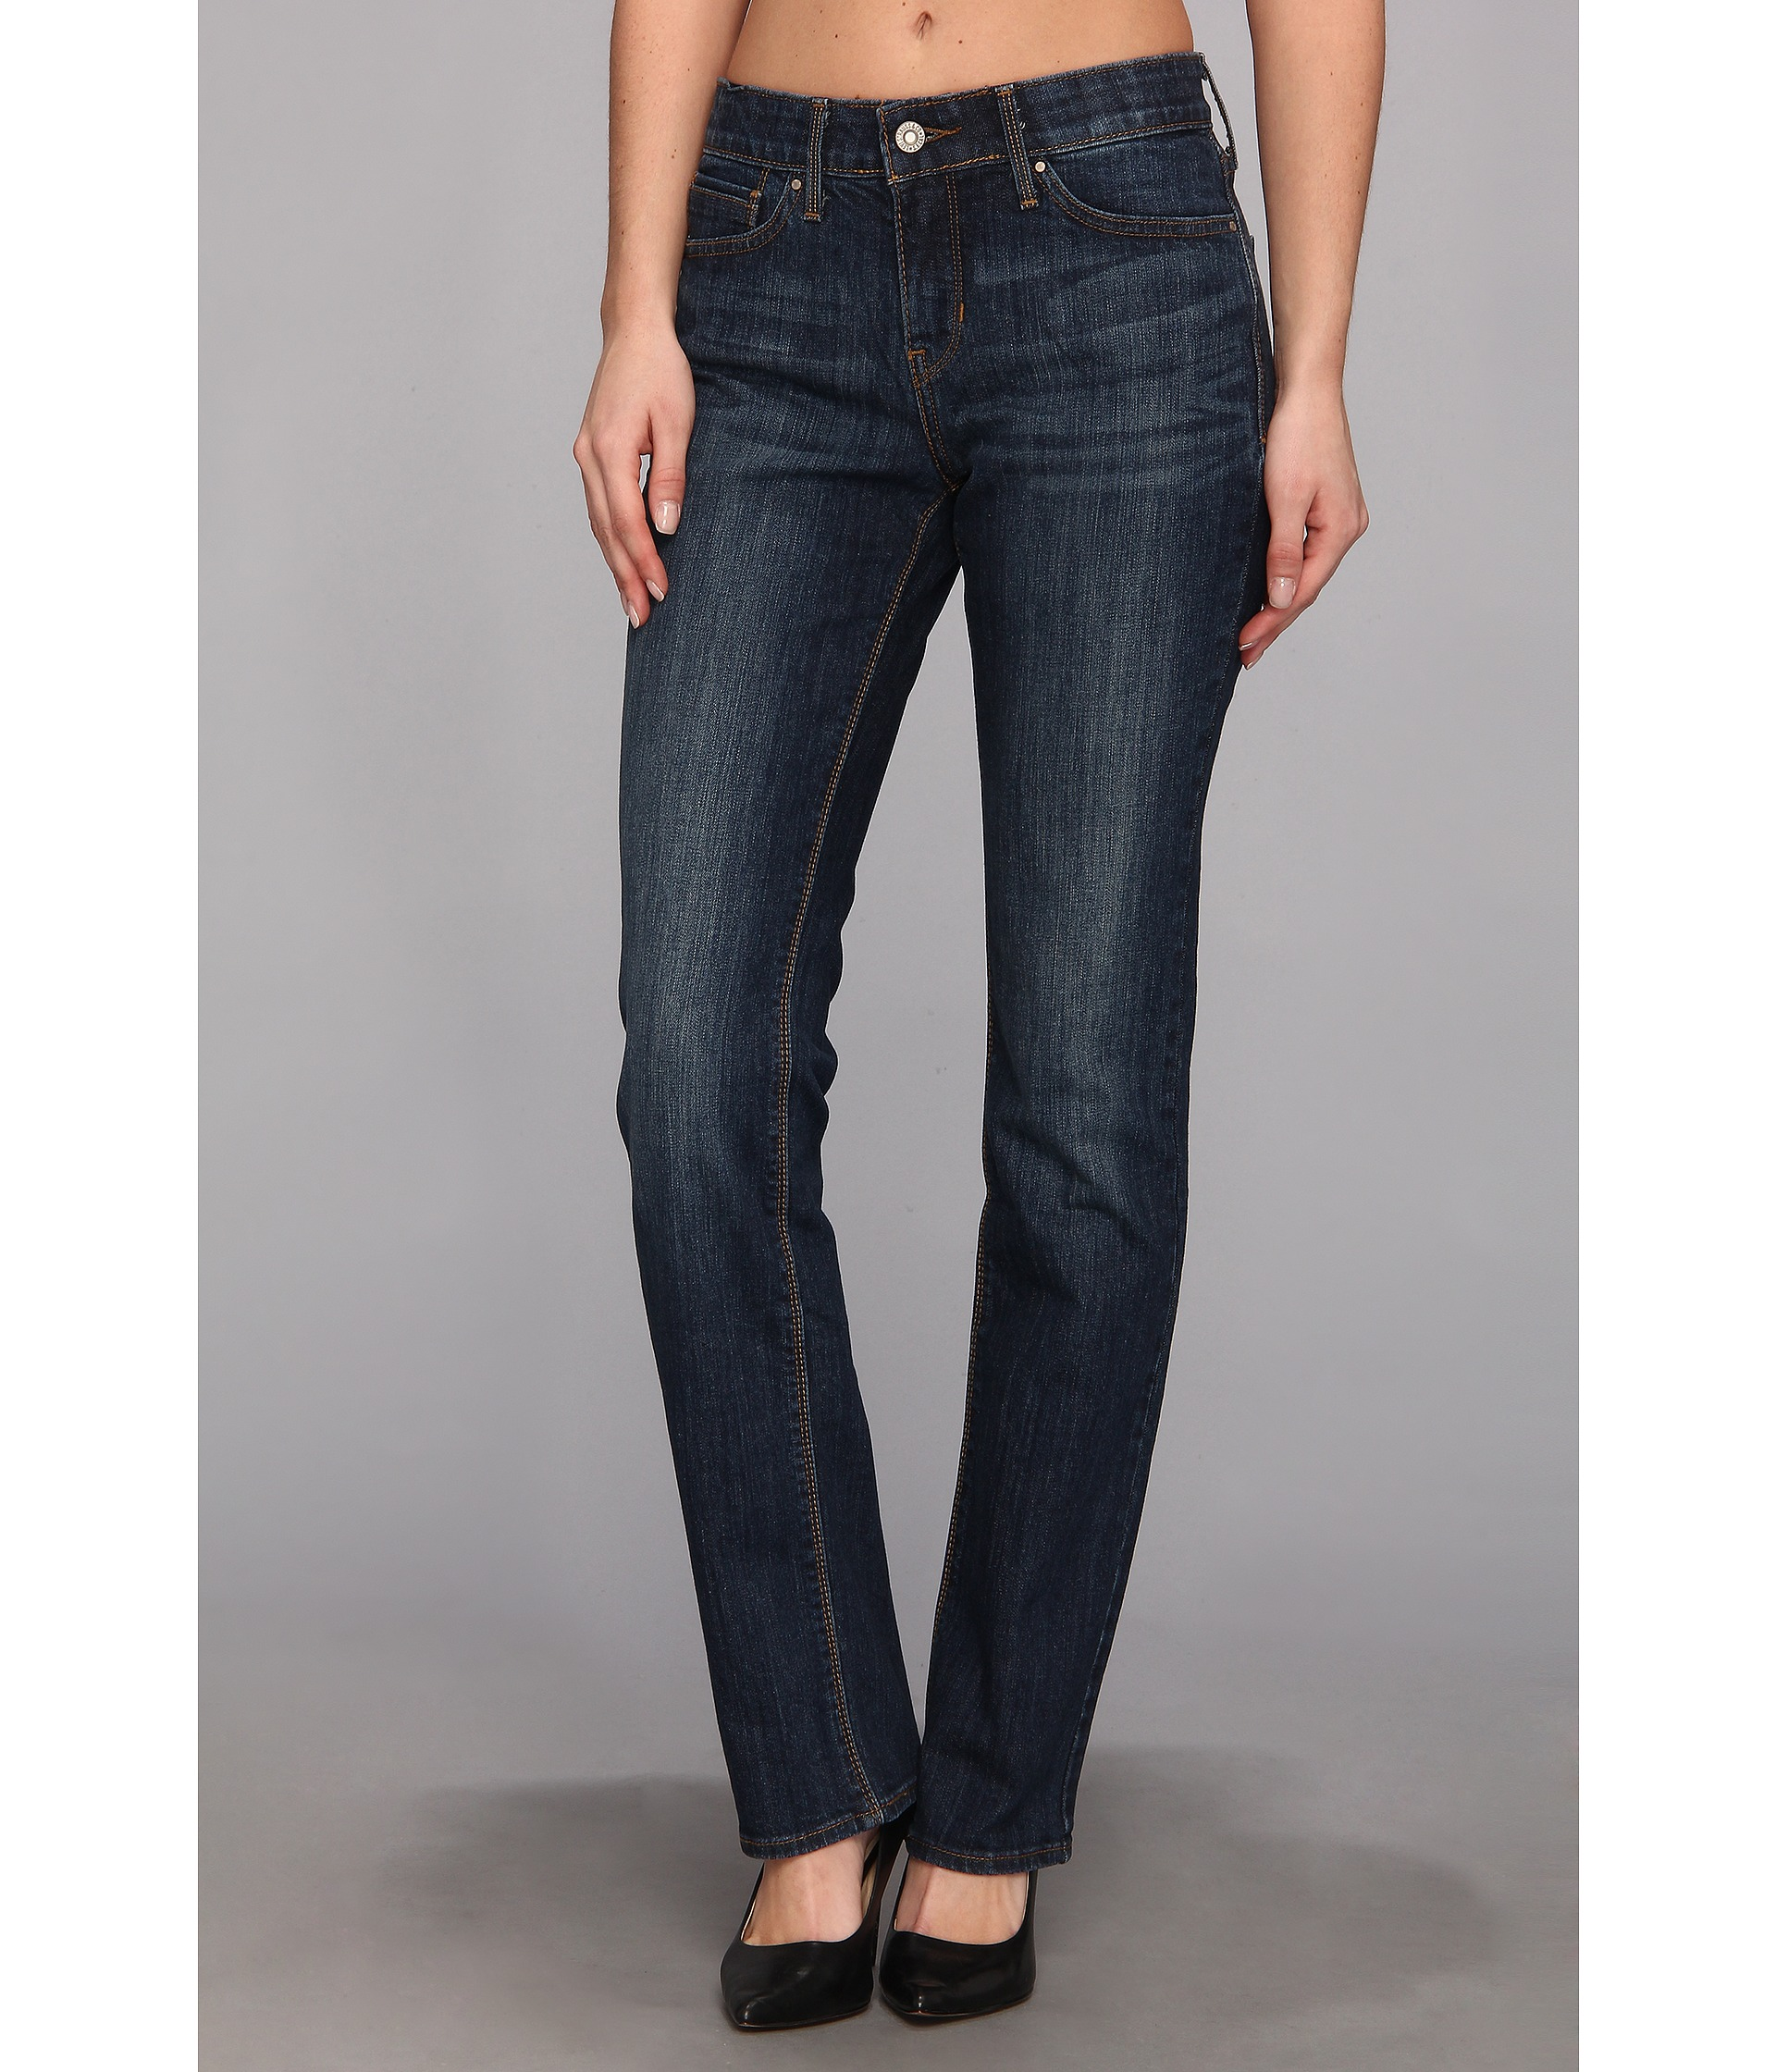 The Perfect Jean Specially formulated to fit, contour, and lengthen your silhouette, the Perfect Jean applies iconic design elements to superior denim fabrication for an elevated look and tailored feel.